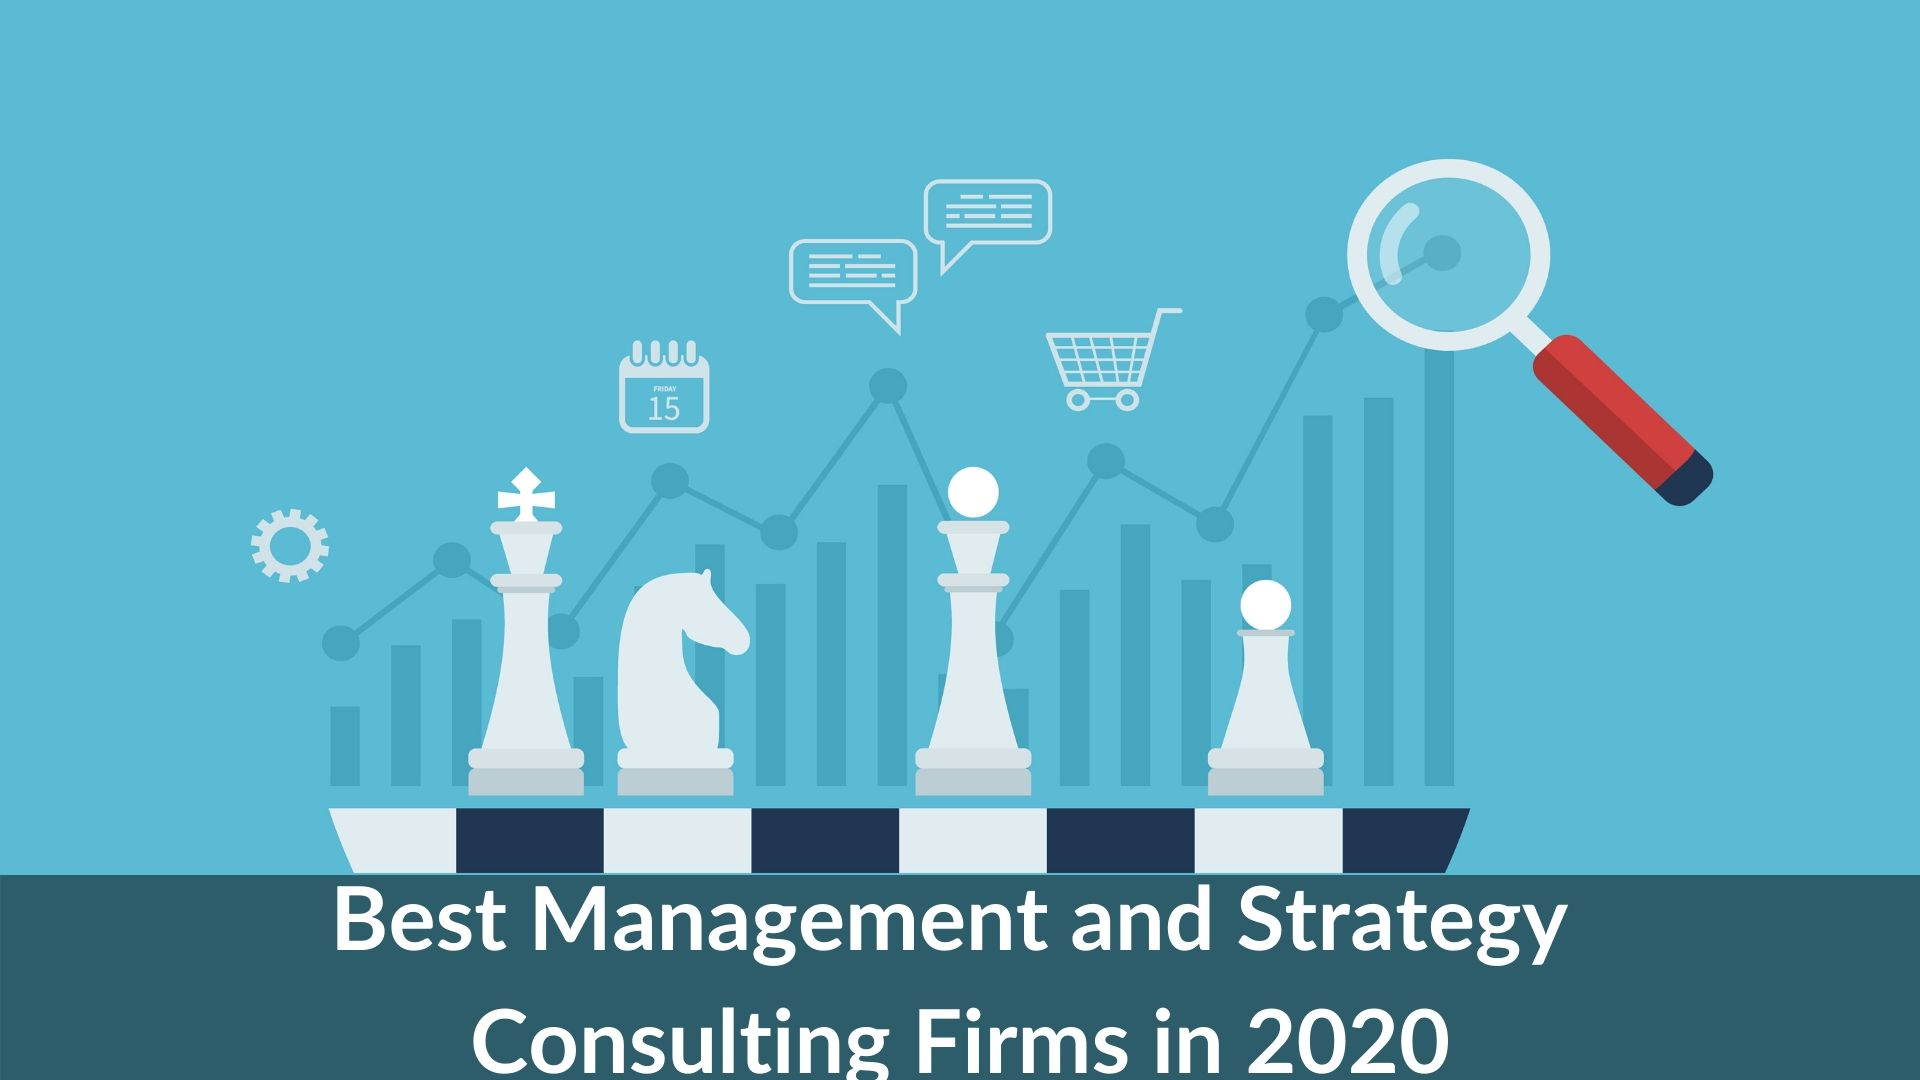 Best Management and Strategy Consulting firms - 2020